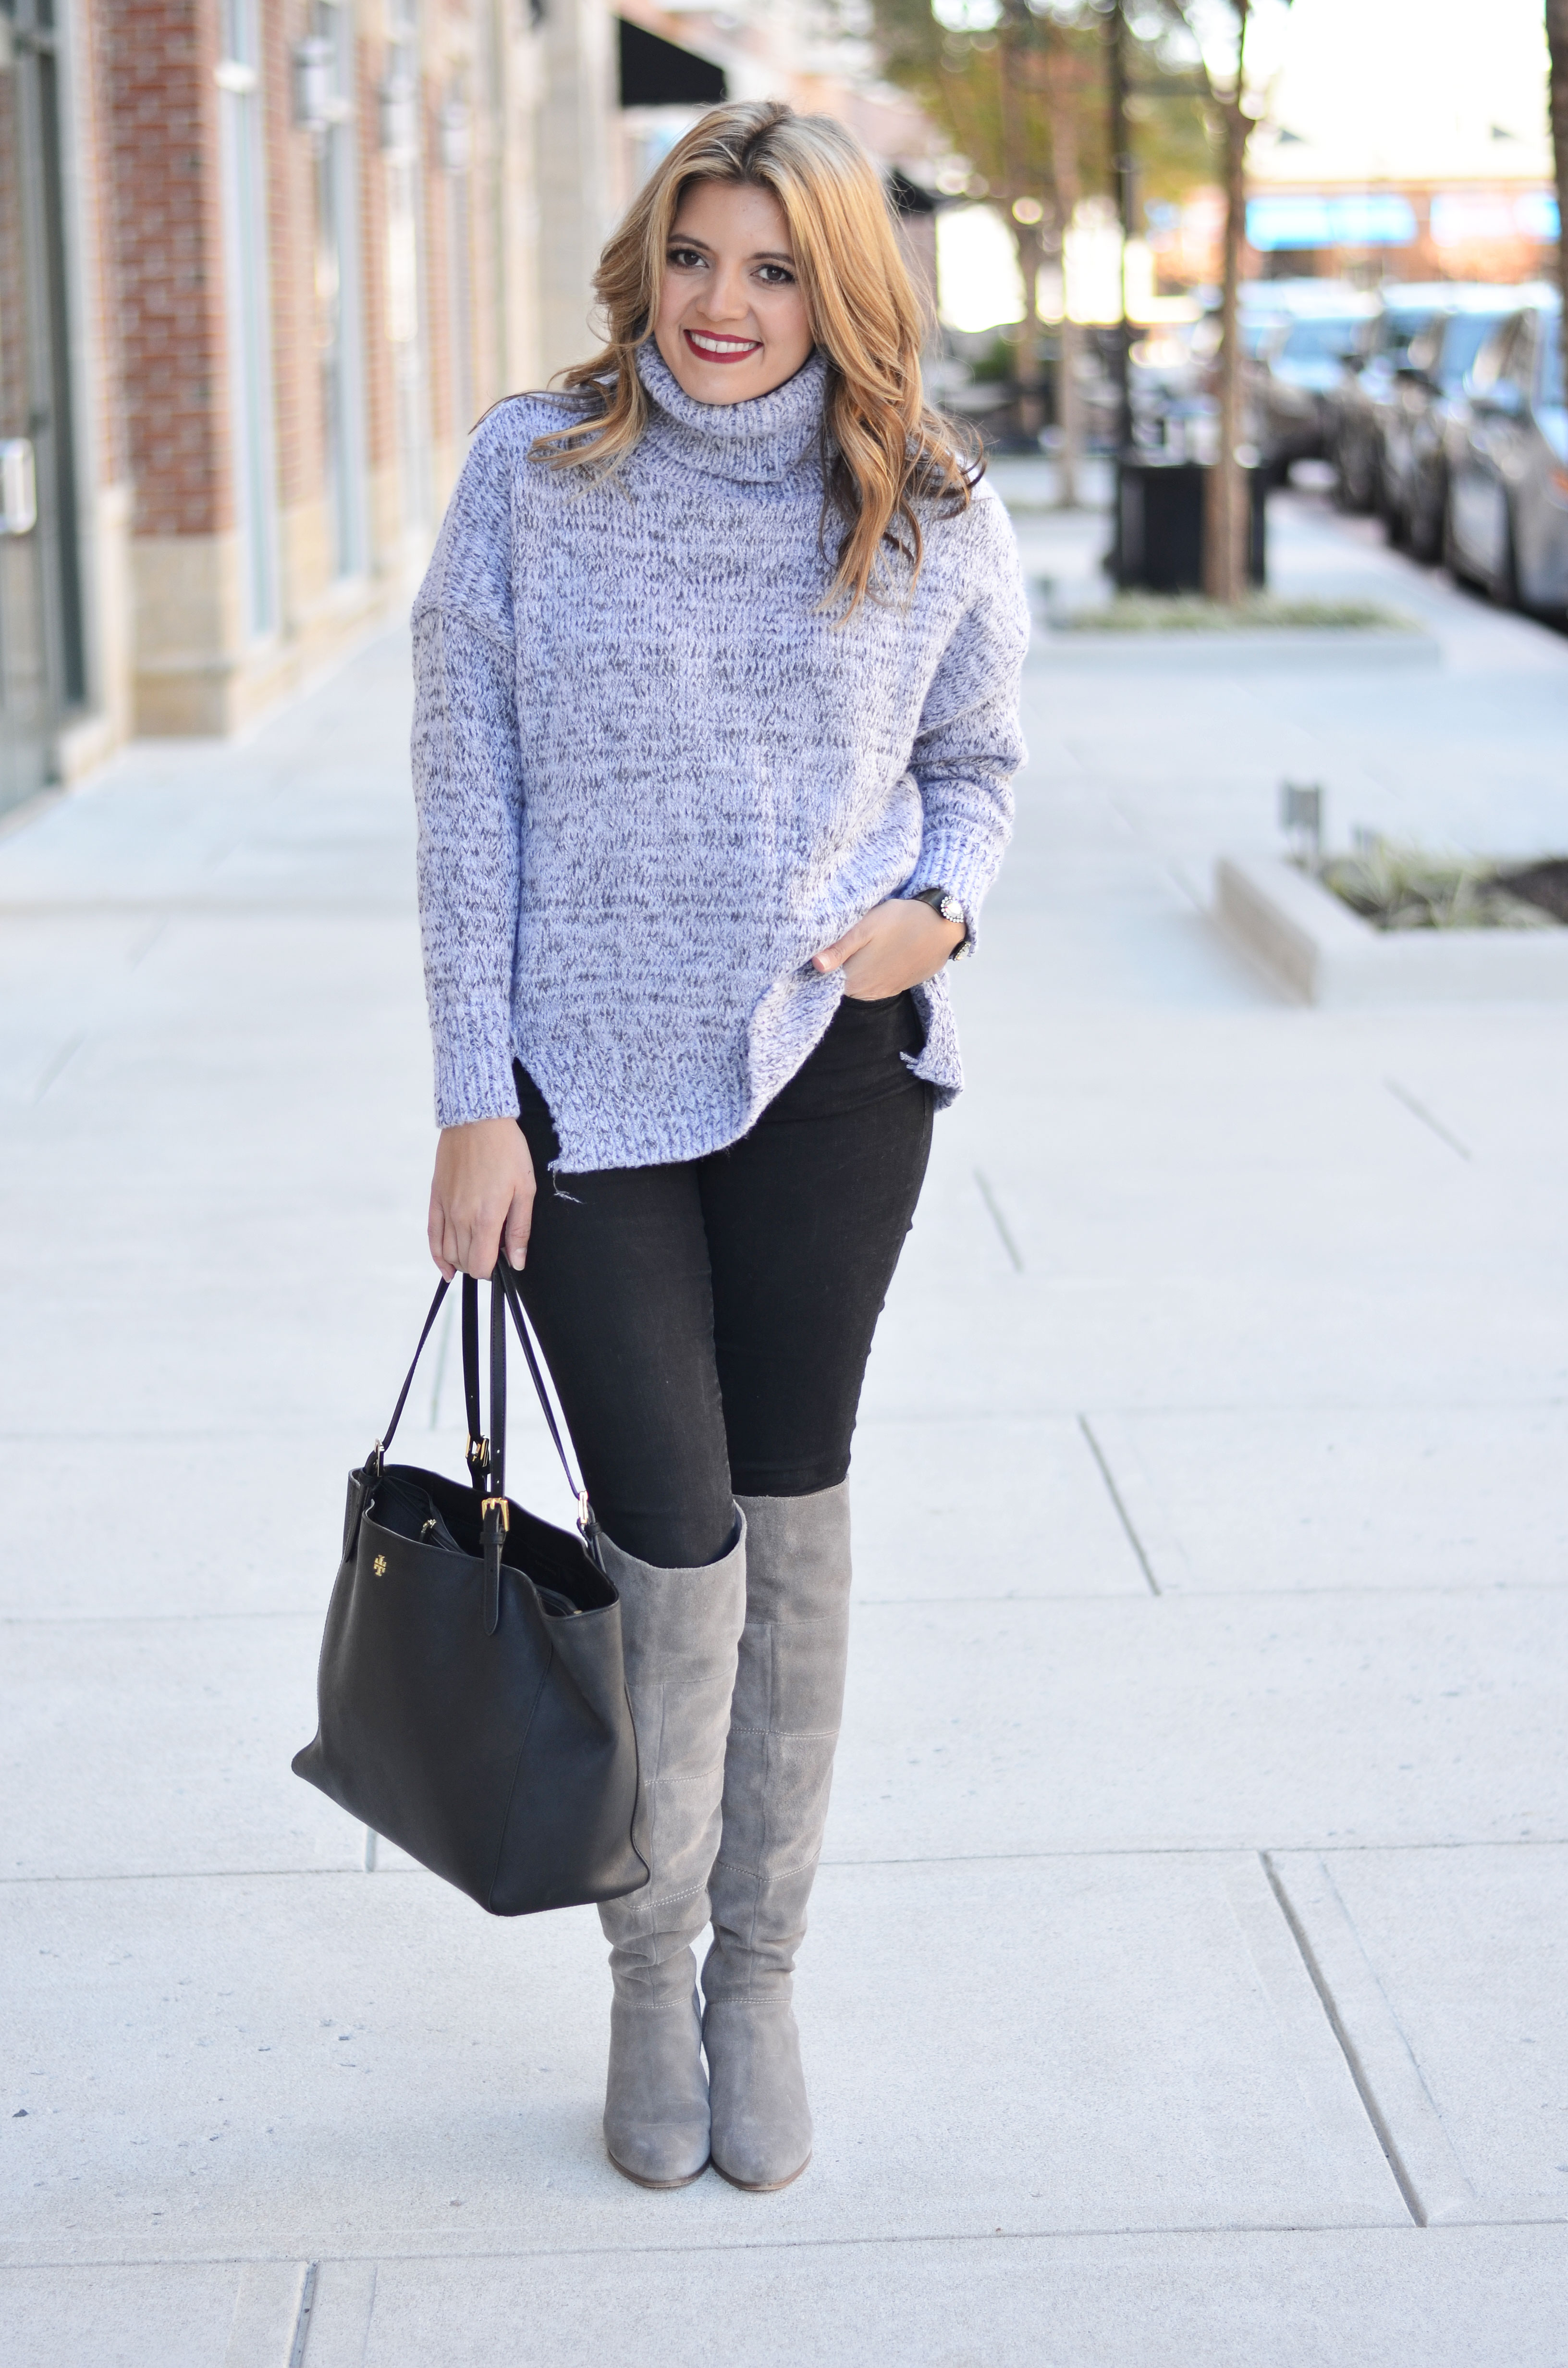 oversized sweater outfit - gray oversized turtleneck with black skinny jeans and gray over the knee boots | www.bylaurenm.com